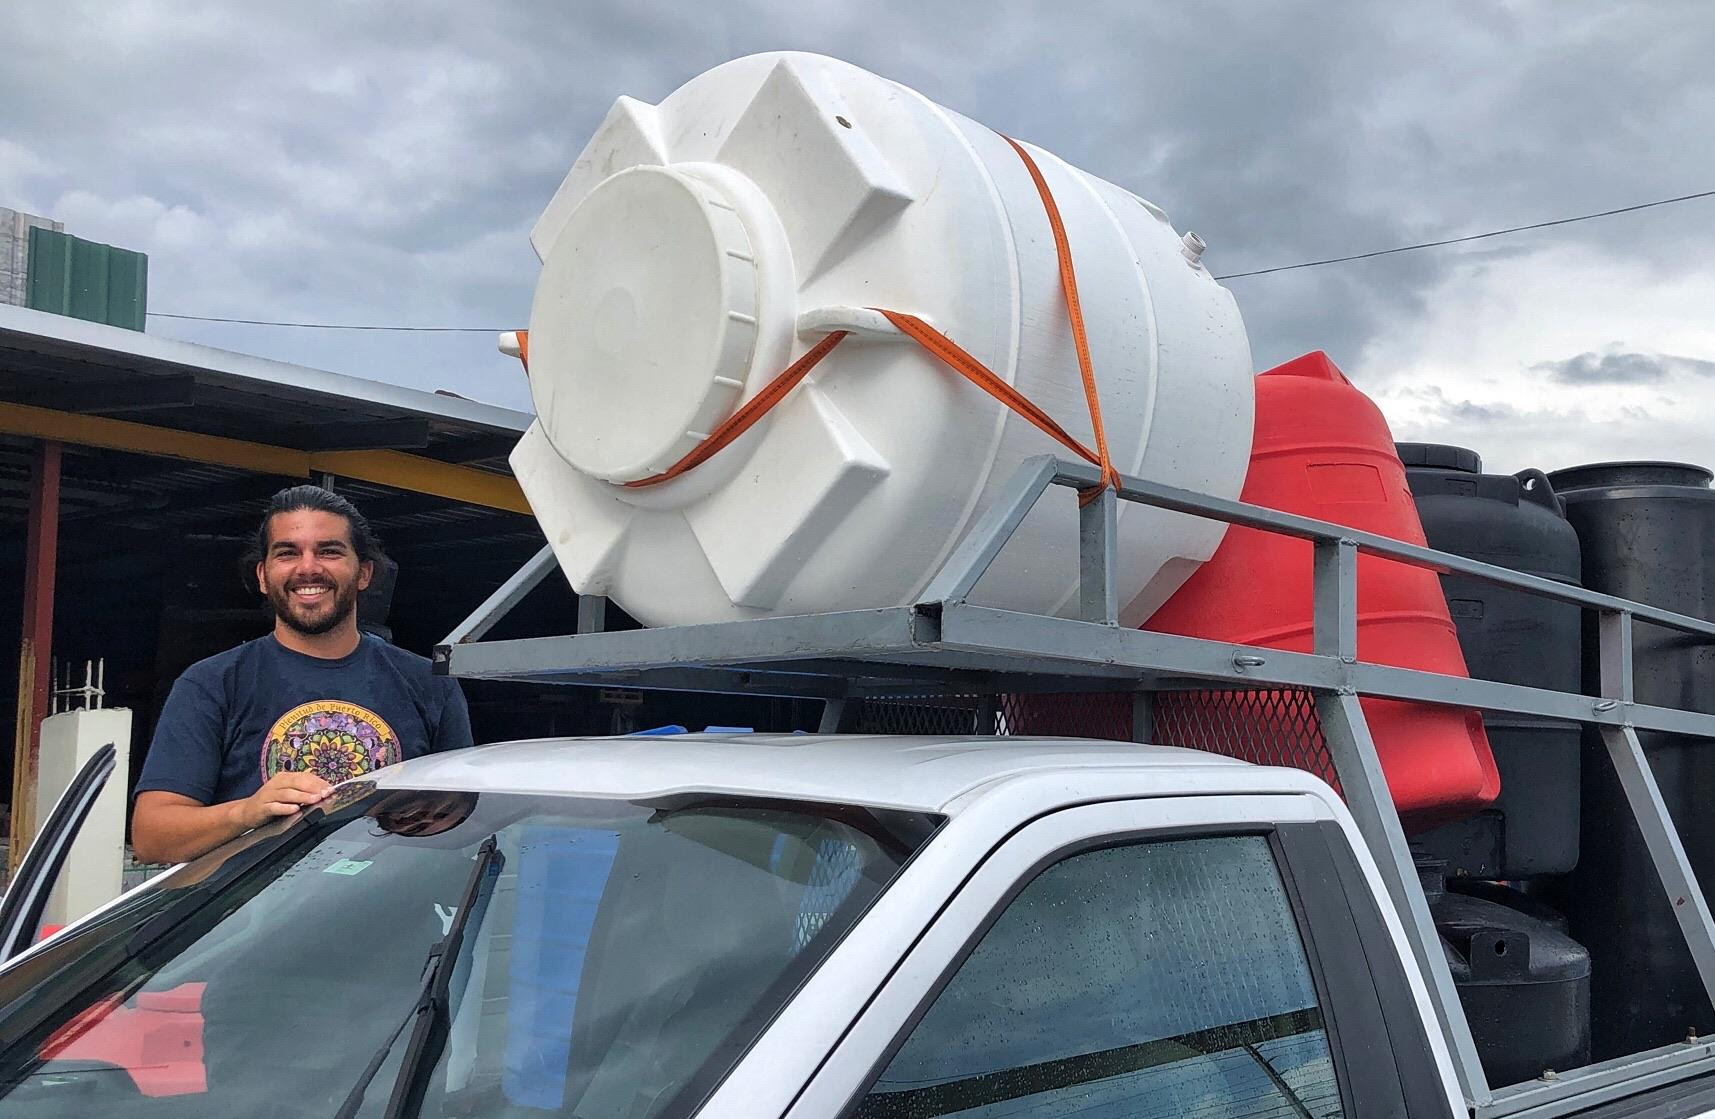 Raymond Balaguer transports the cisterns for the installation of rainwater collection systems in homes of Las Marías, as part of the Rainwater Harvesting Mentorship Program.